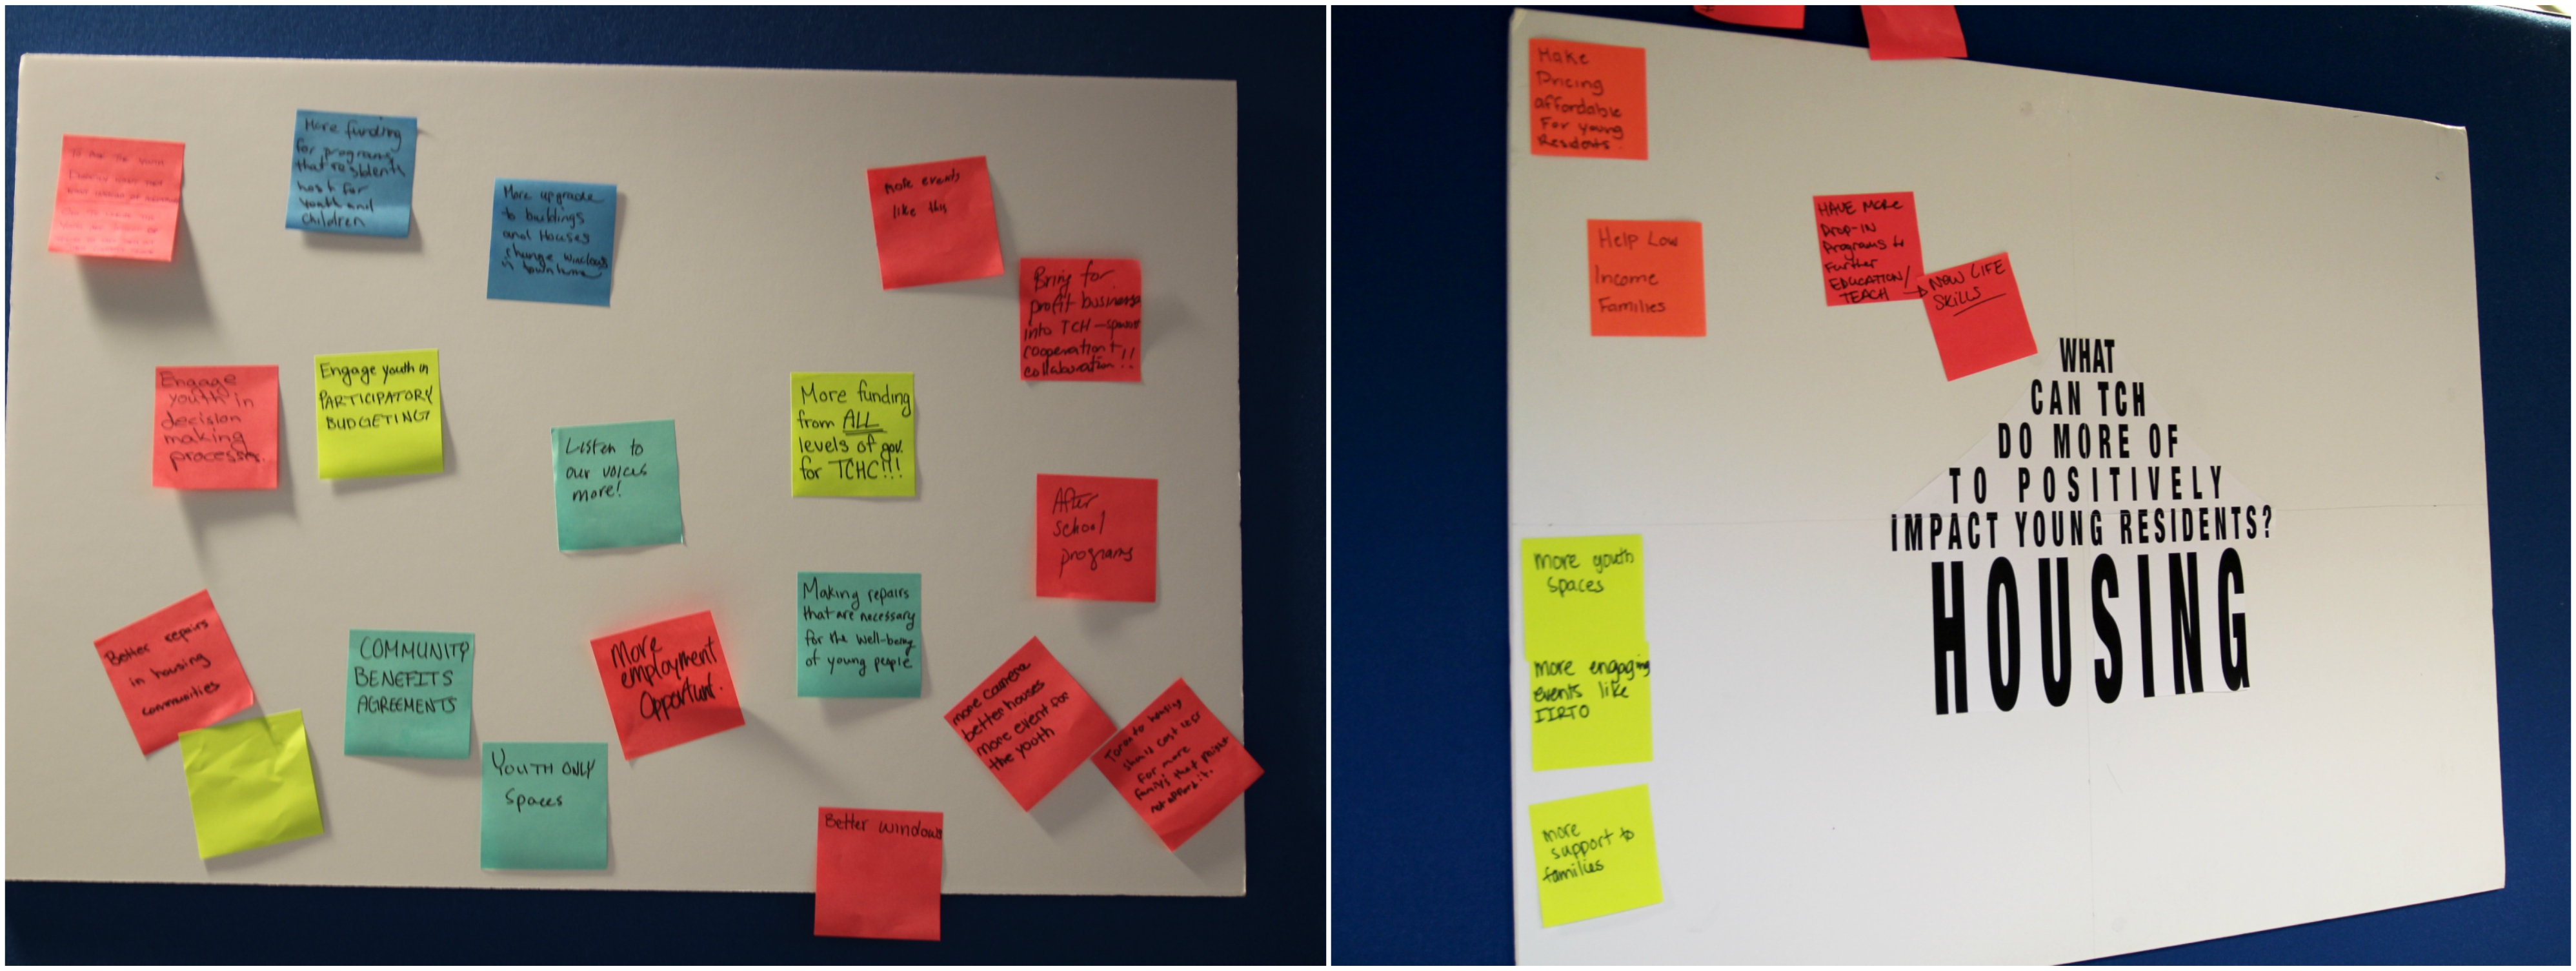 Sticky notes with ideas about how to improve TCHC posted on boards.